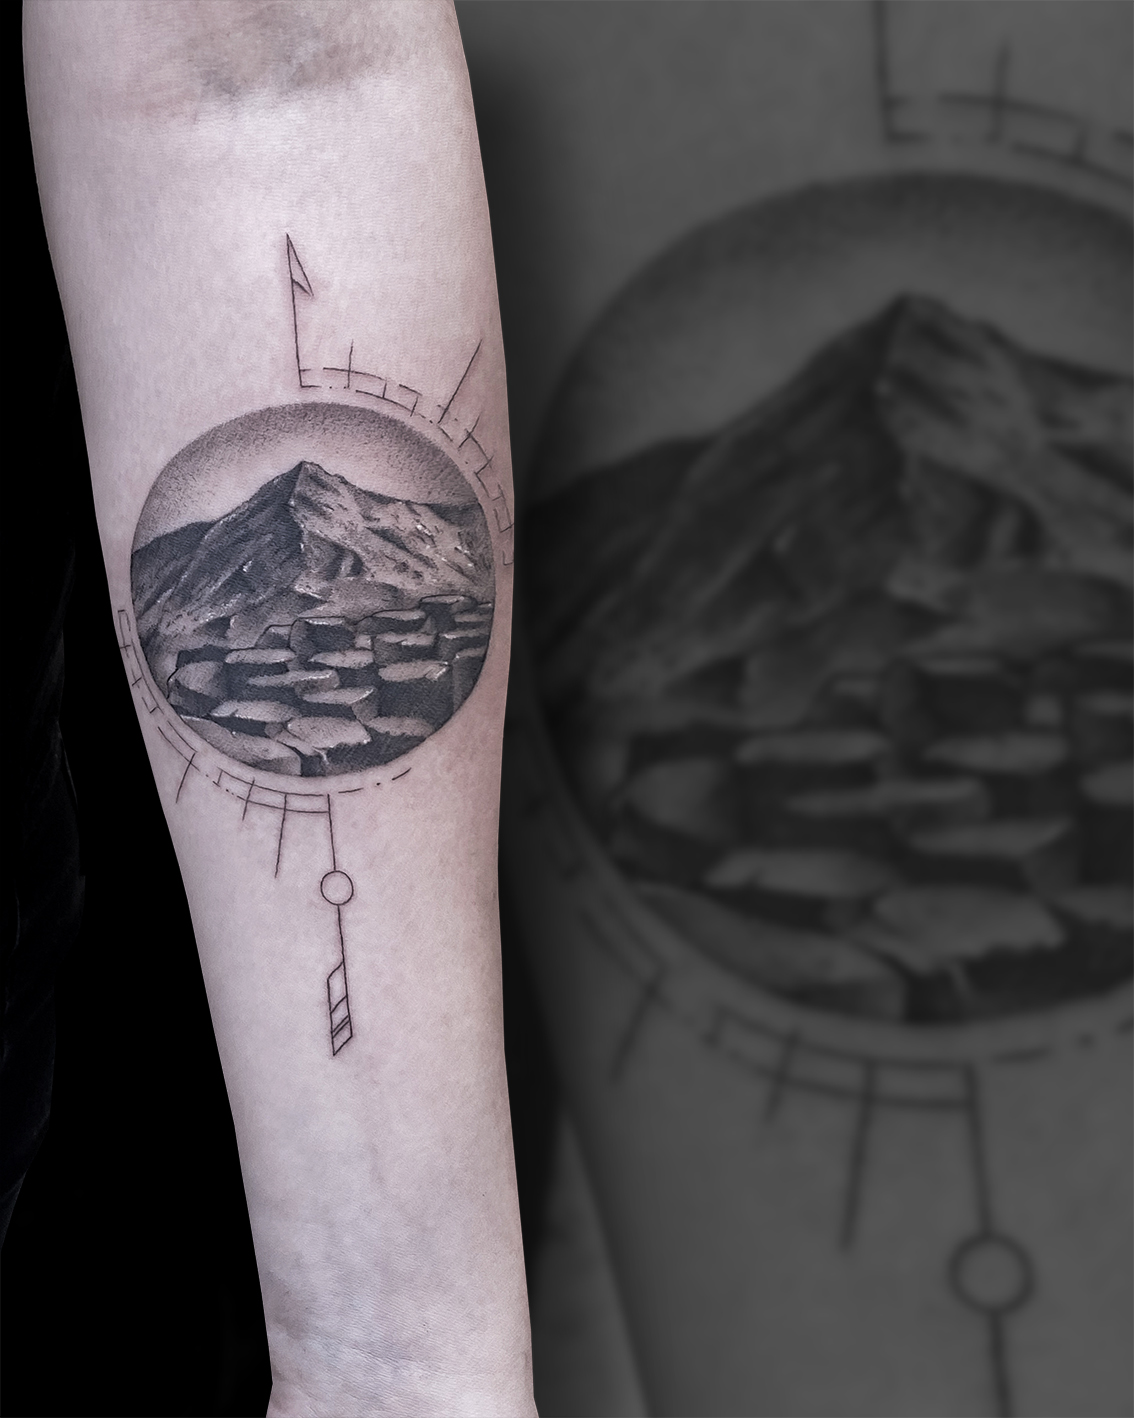 Tattoo Zincik - Mountains tattoo